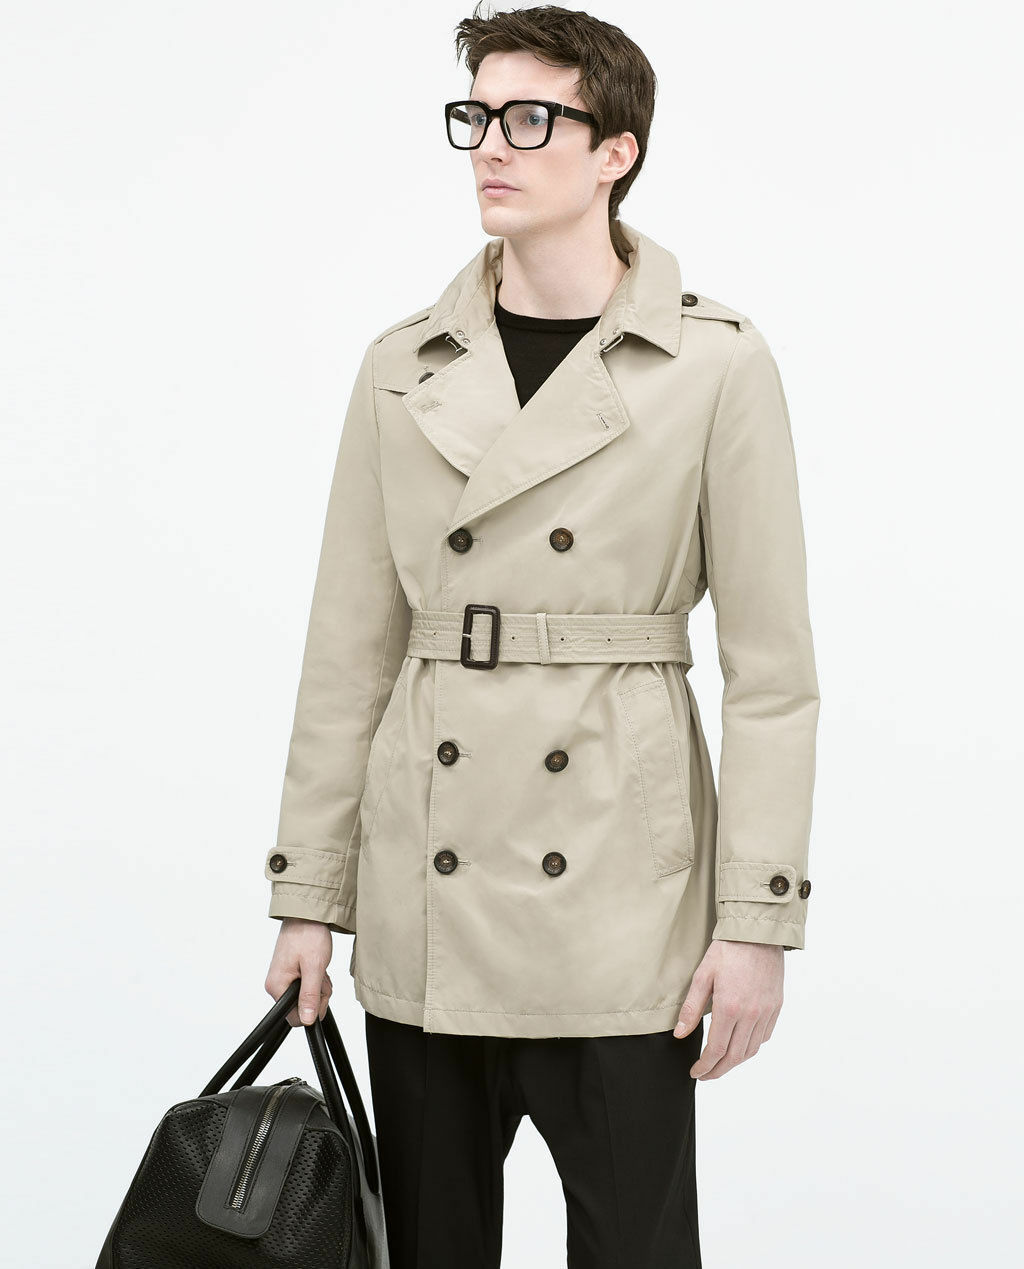 burberry trench coat outlet online t9zg  Top 10 Men's Trench Coats EBay